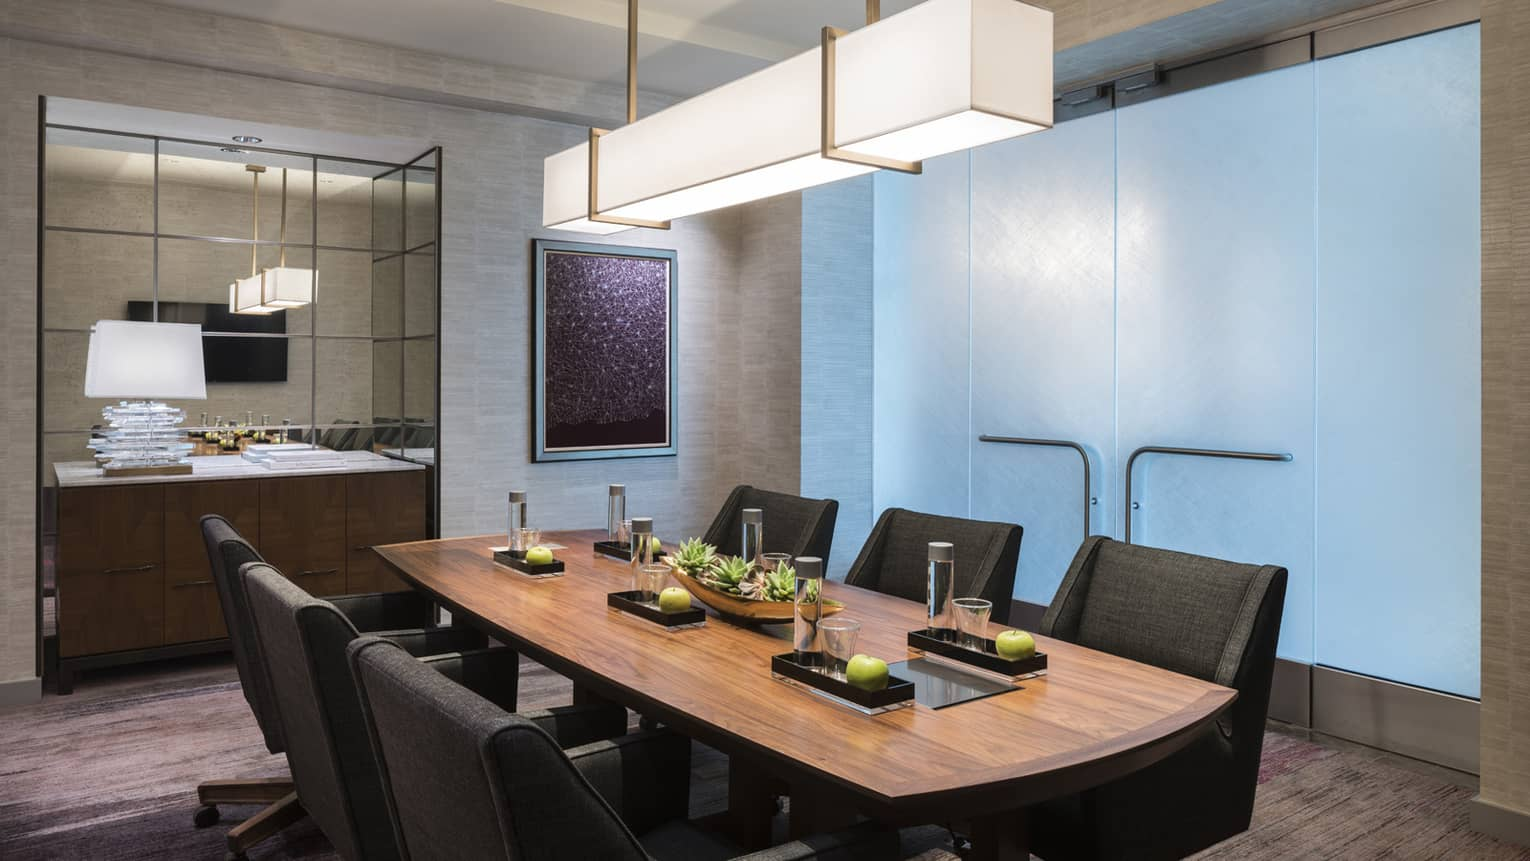 Wood boardroom meeting table with black executive chairs under modern light, glass wall